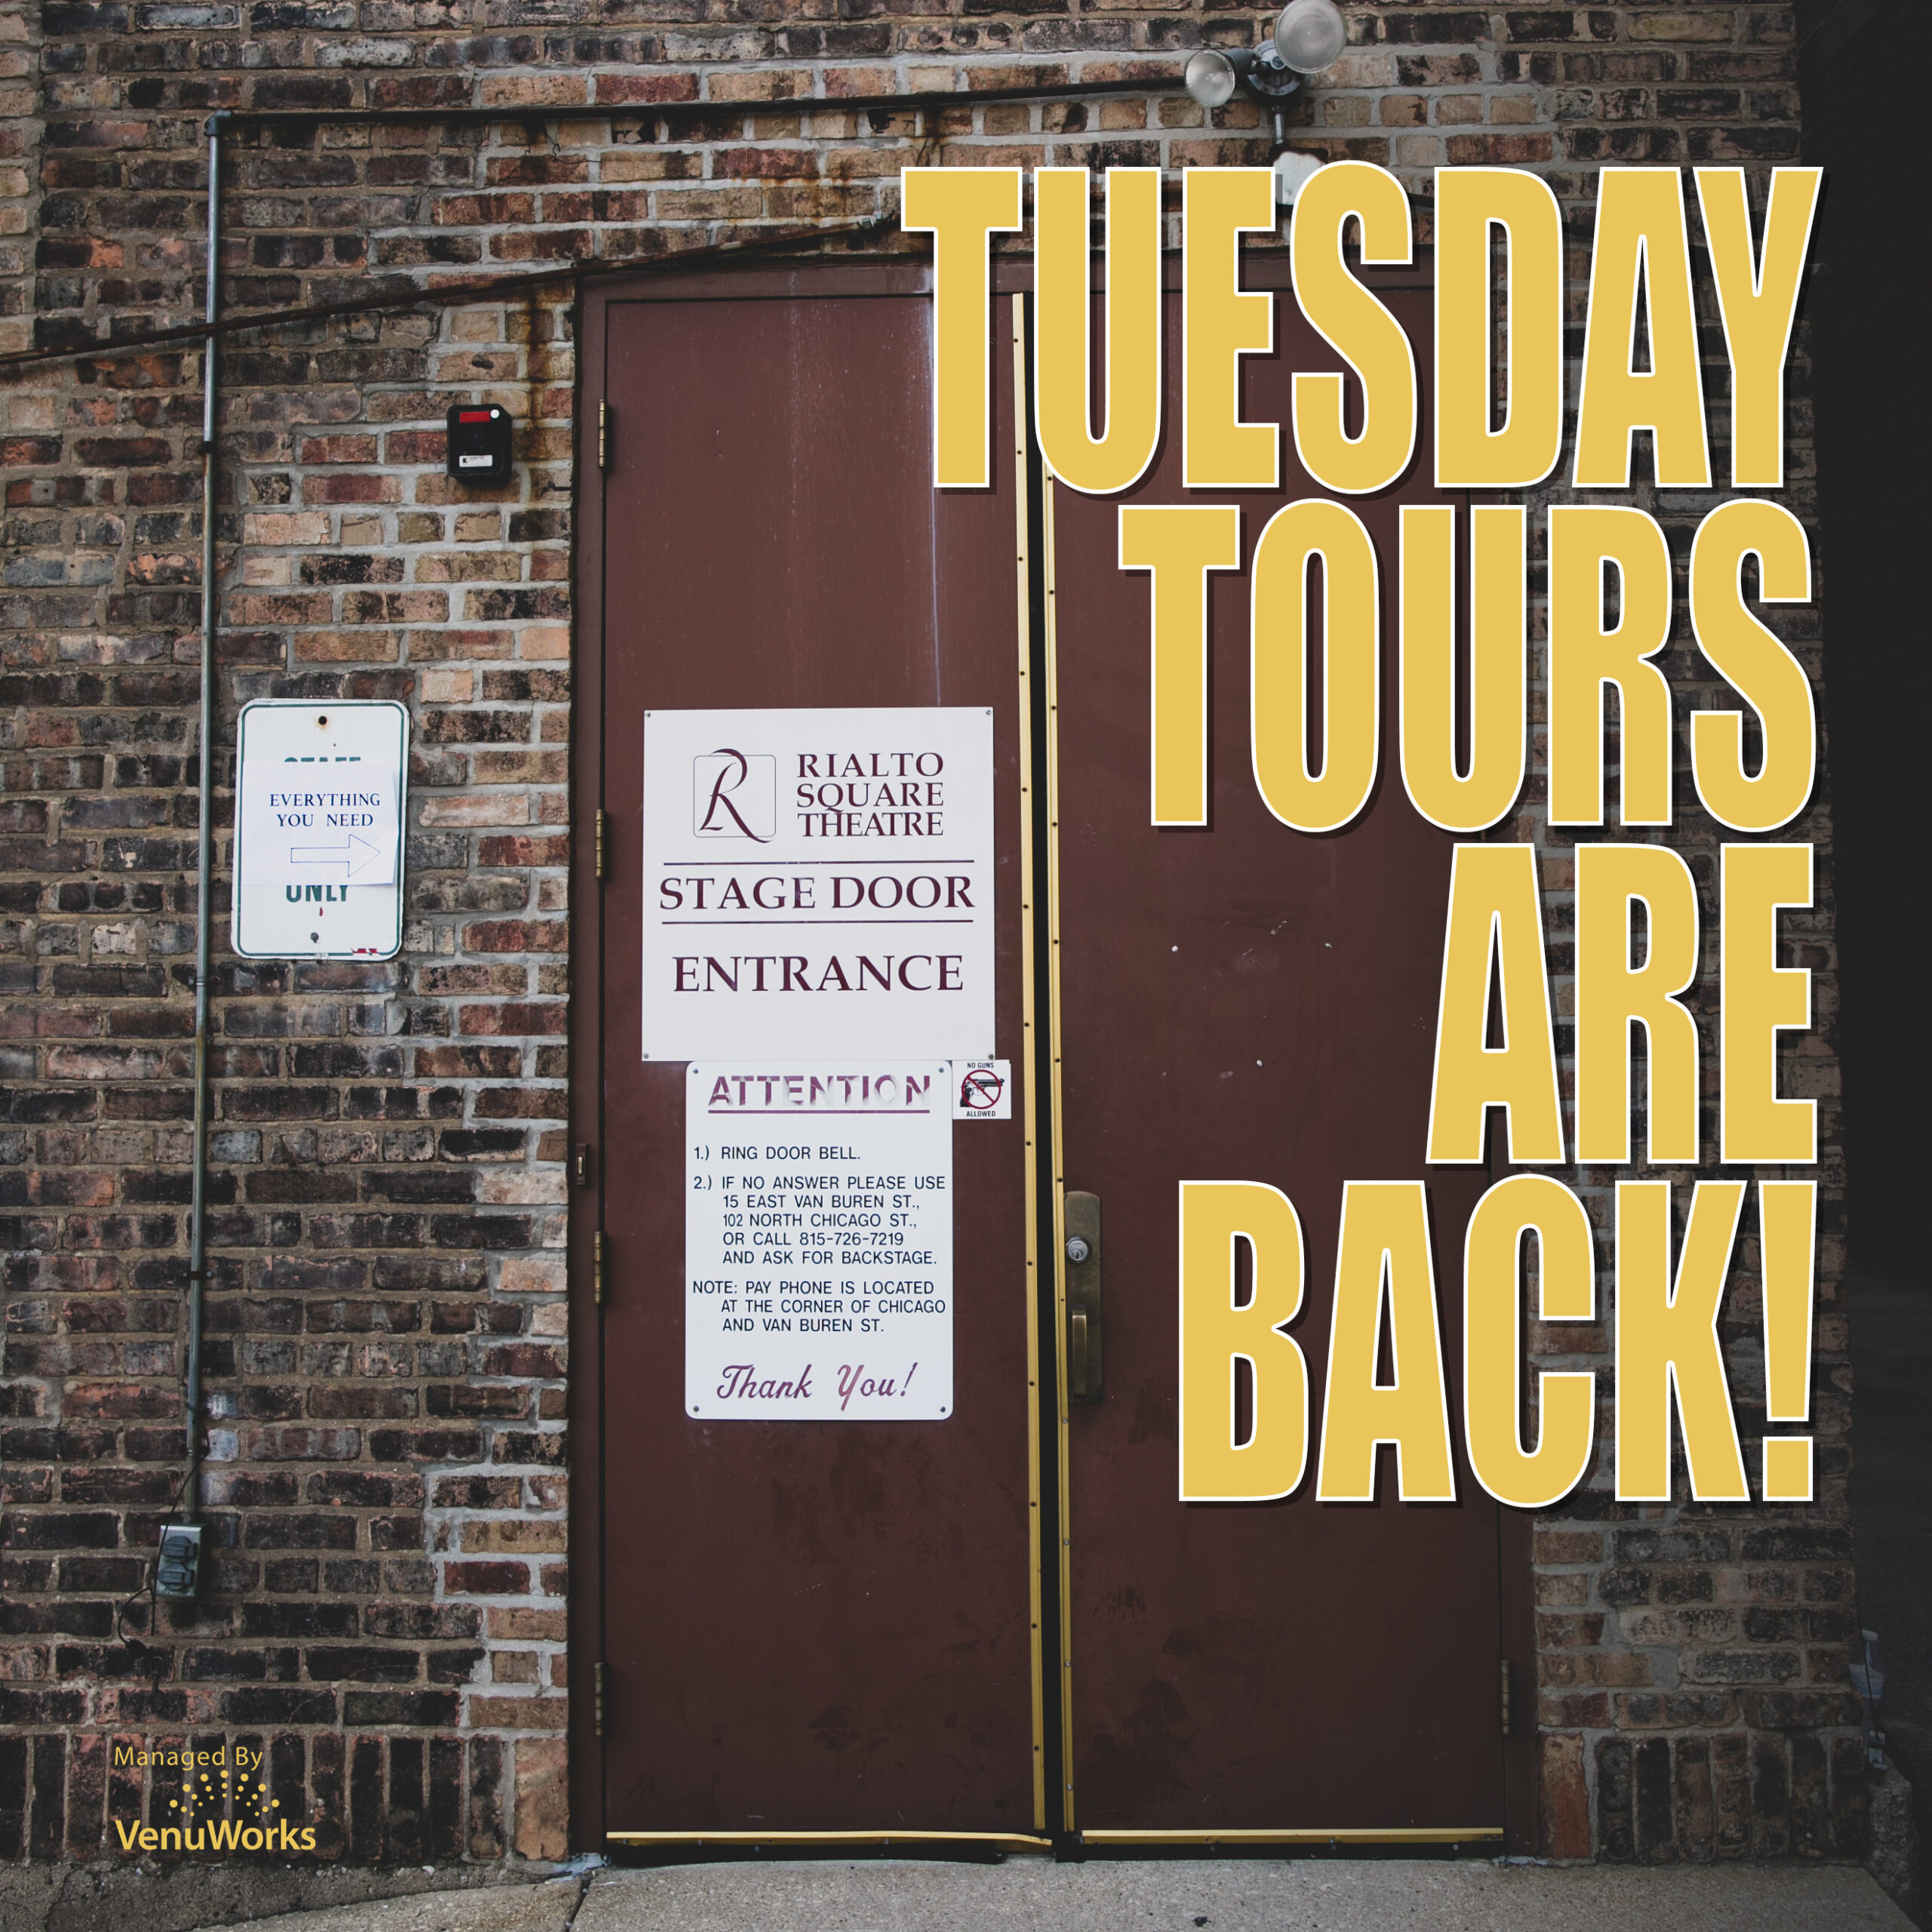 Tuesday Tours Are Back